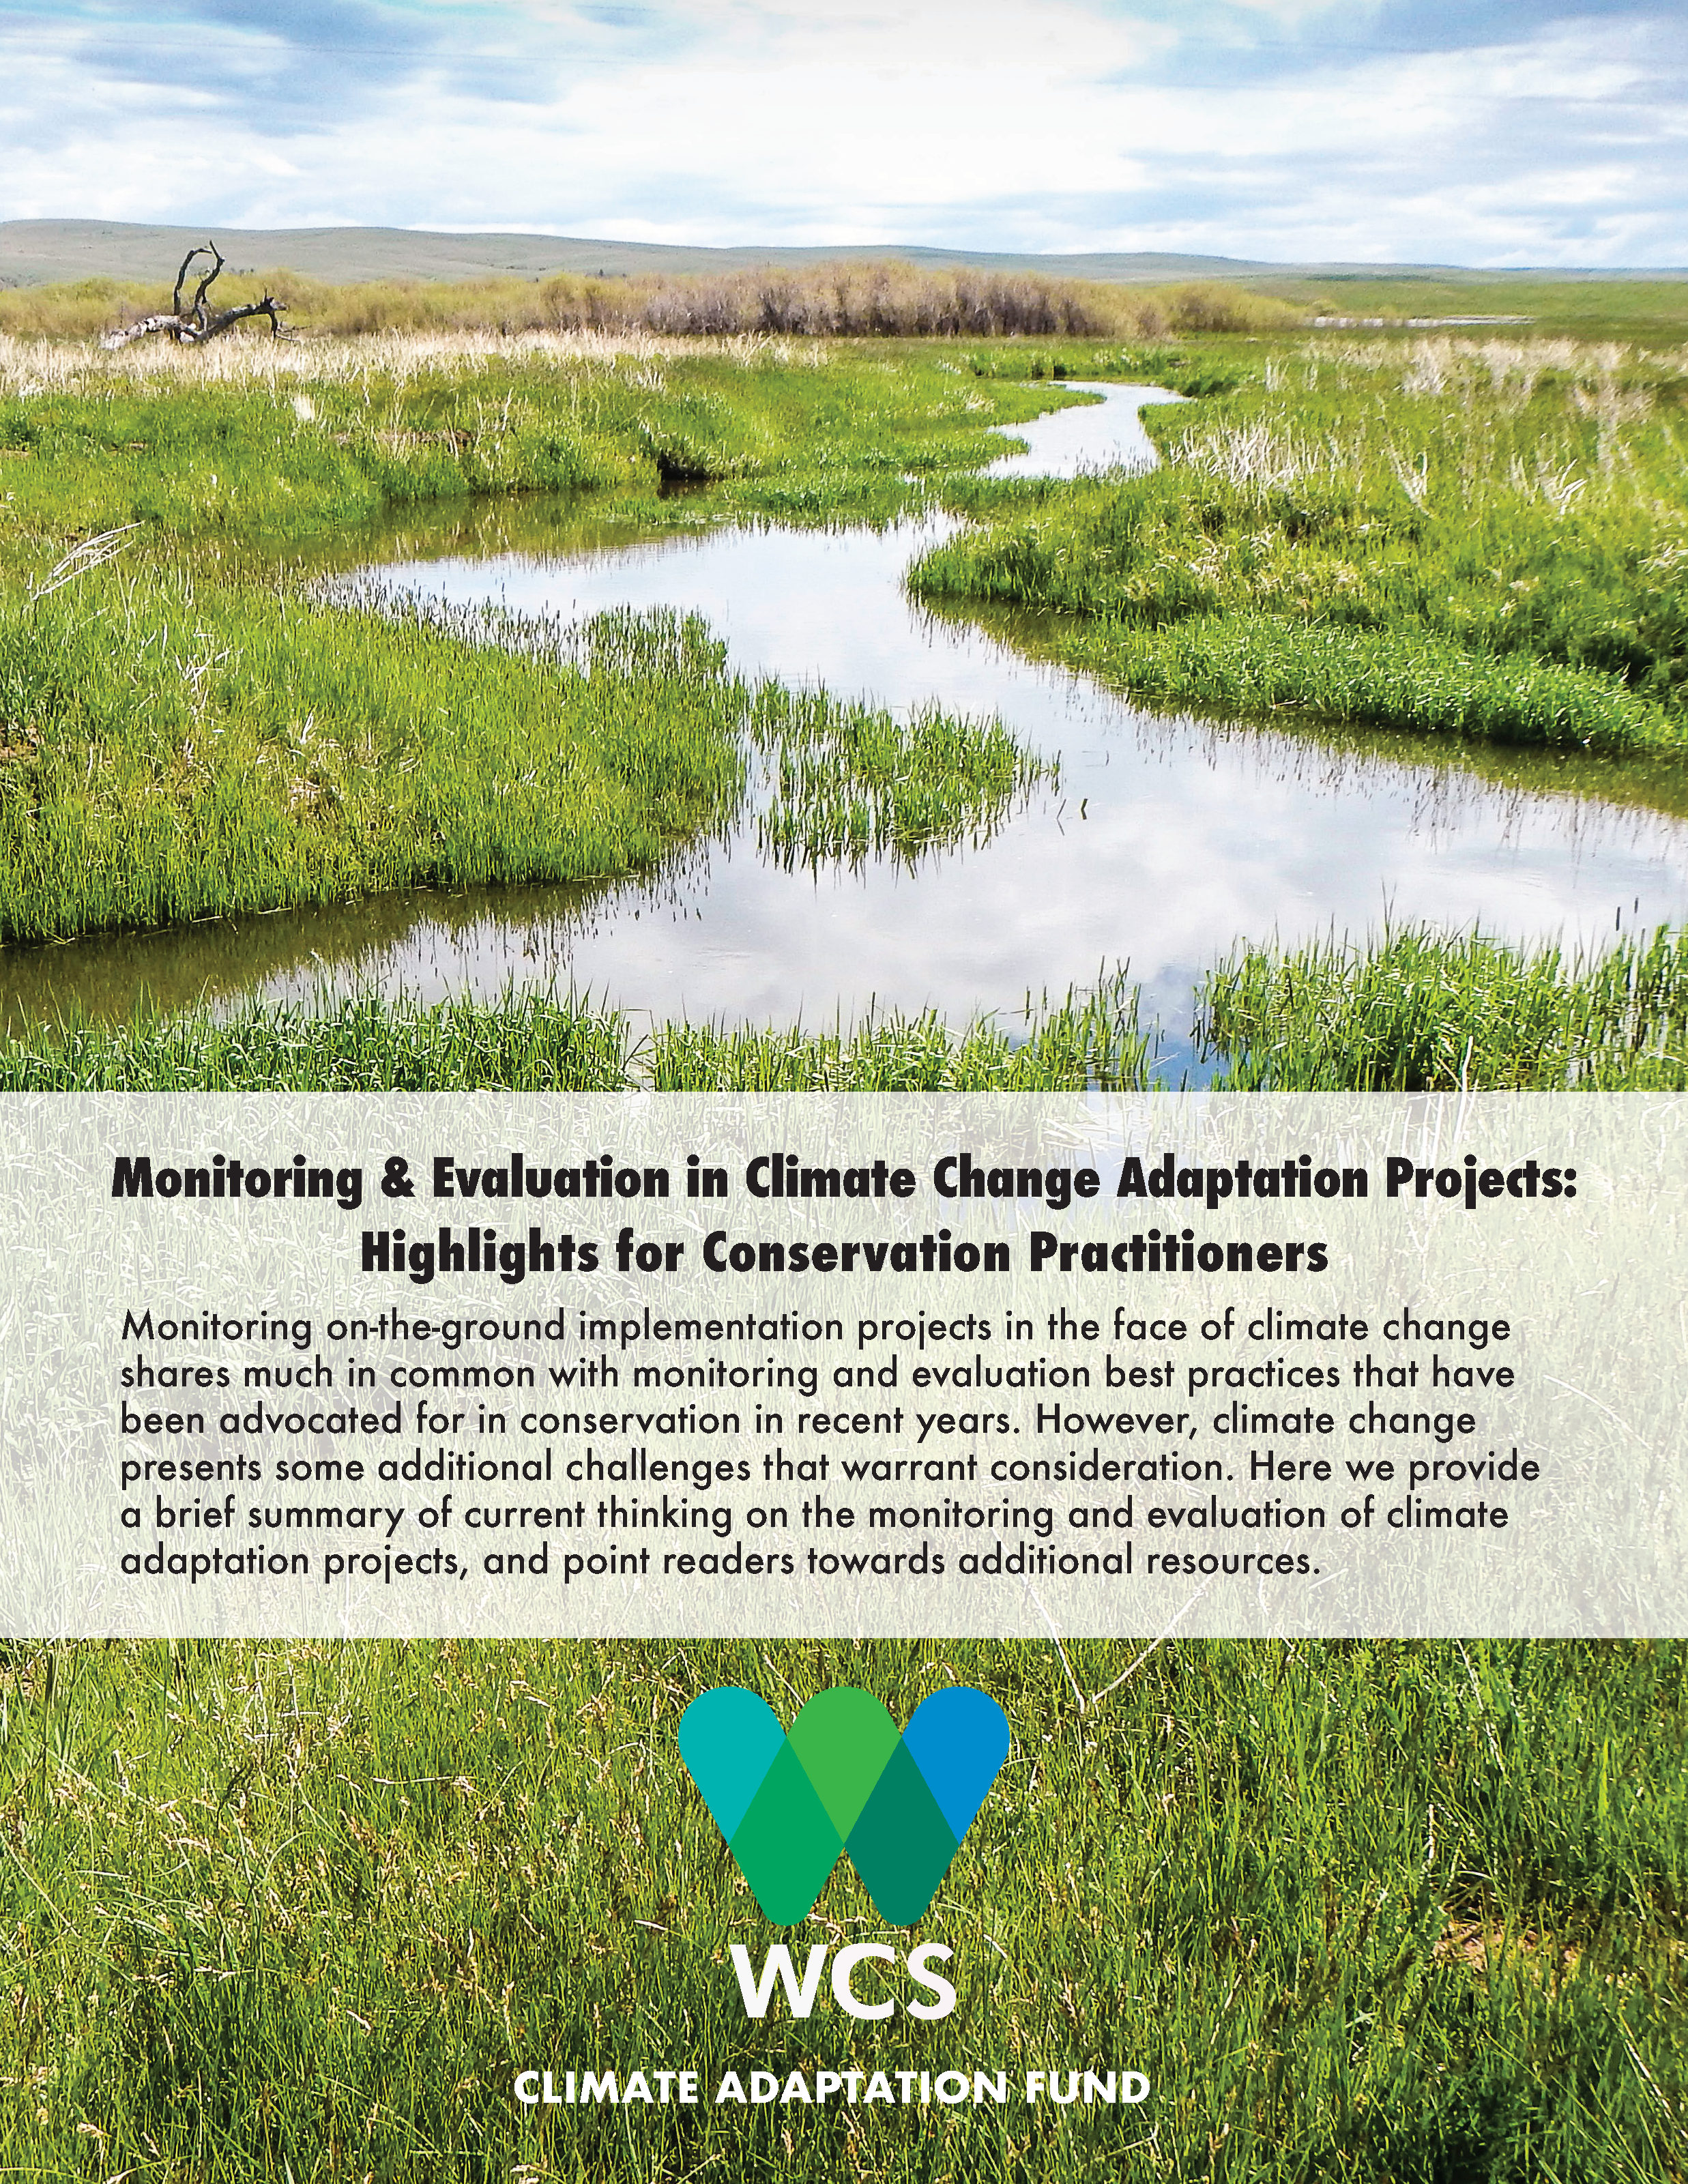 Monitoring & Evaluation Guide   A brief summary of current thinking on the monitoring and evaluation of climate adaptation projects and point readers toward additional resources.